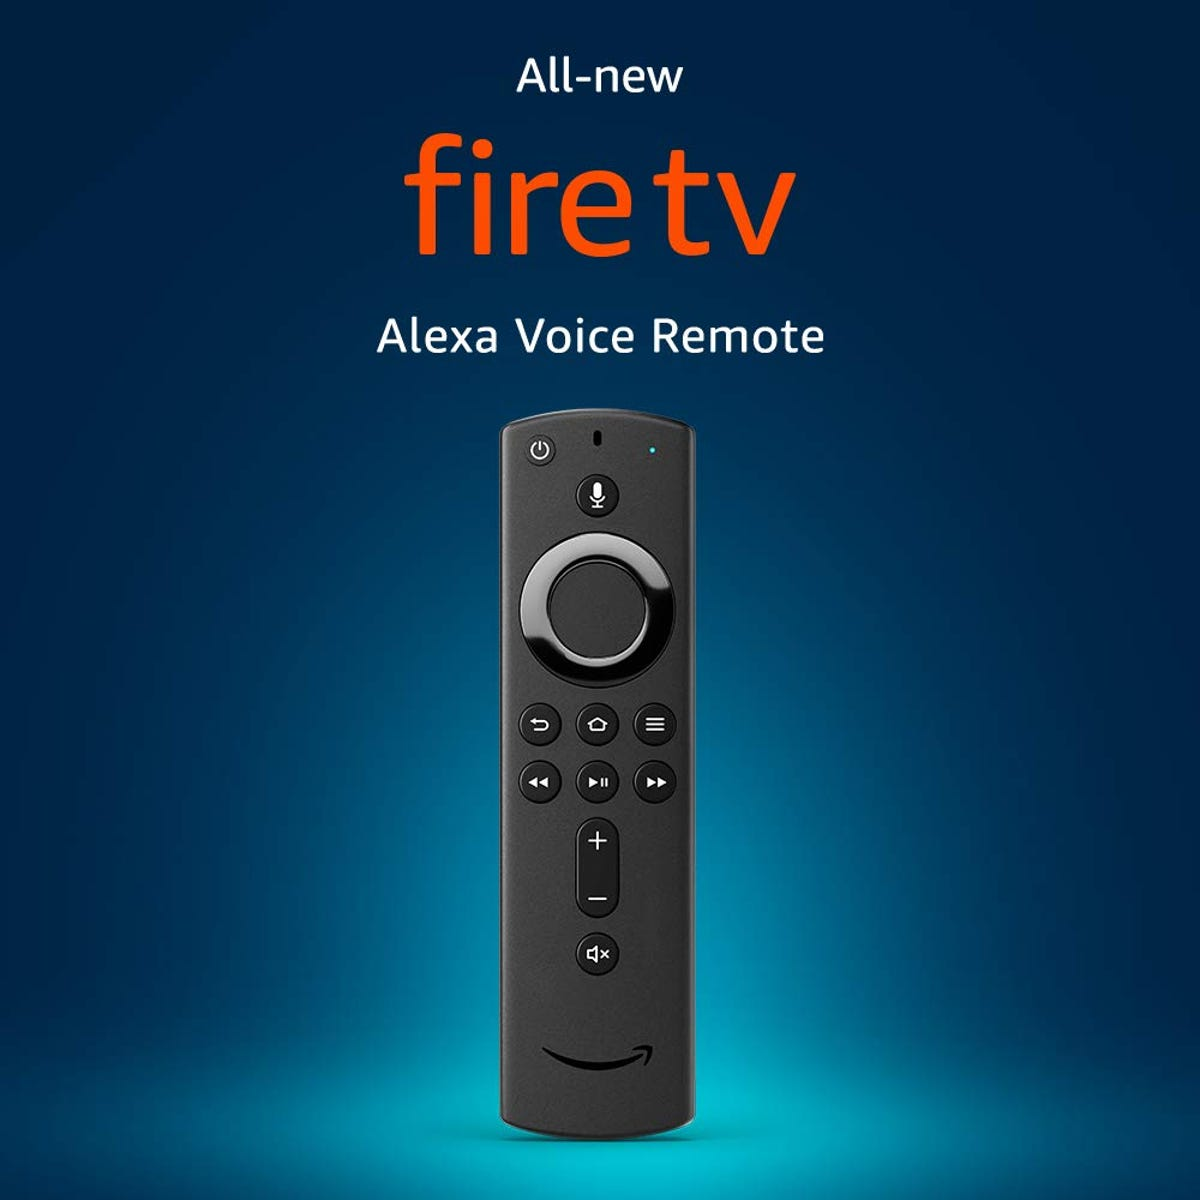 Amazon Fire TV remote with Alexa can now control most TVs